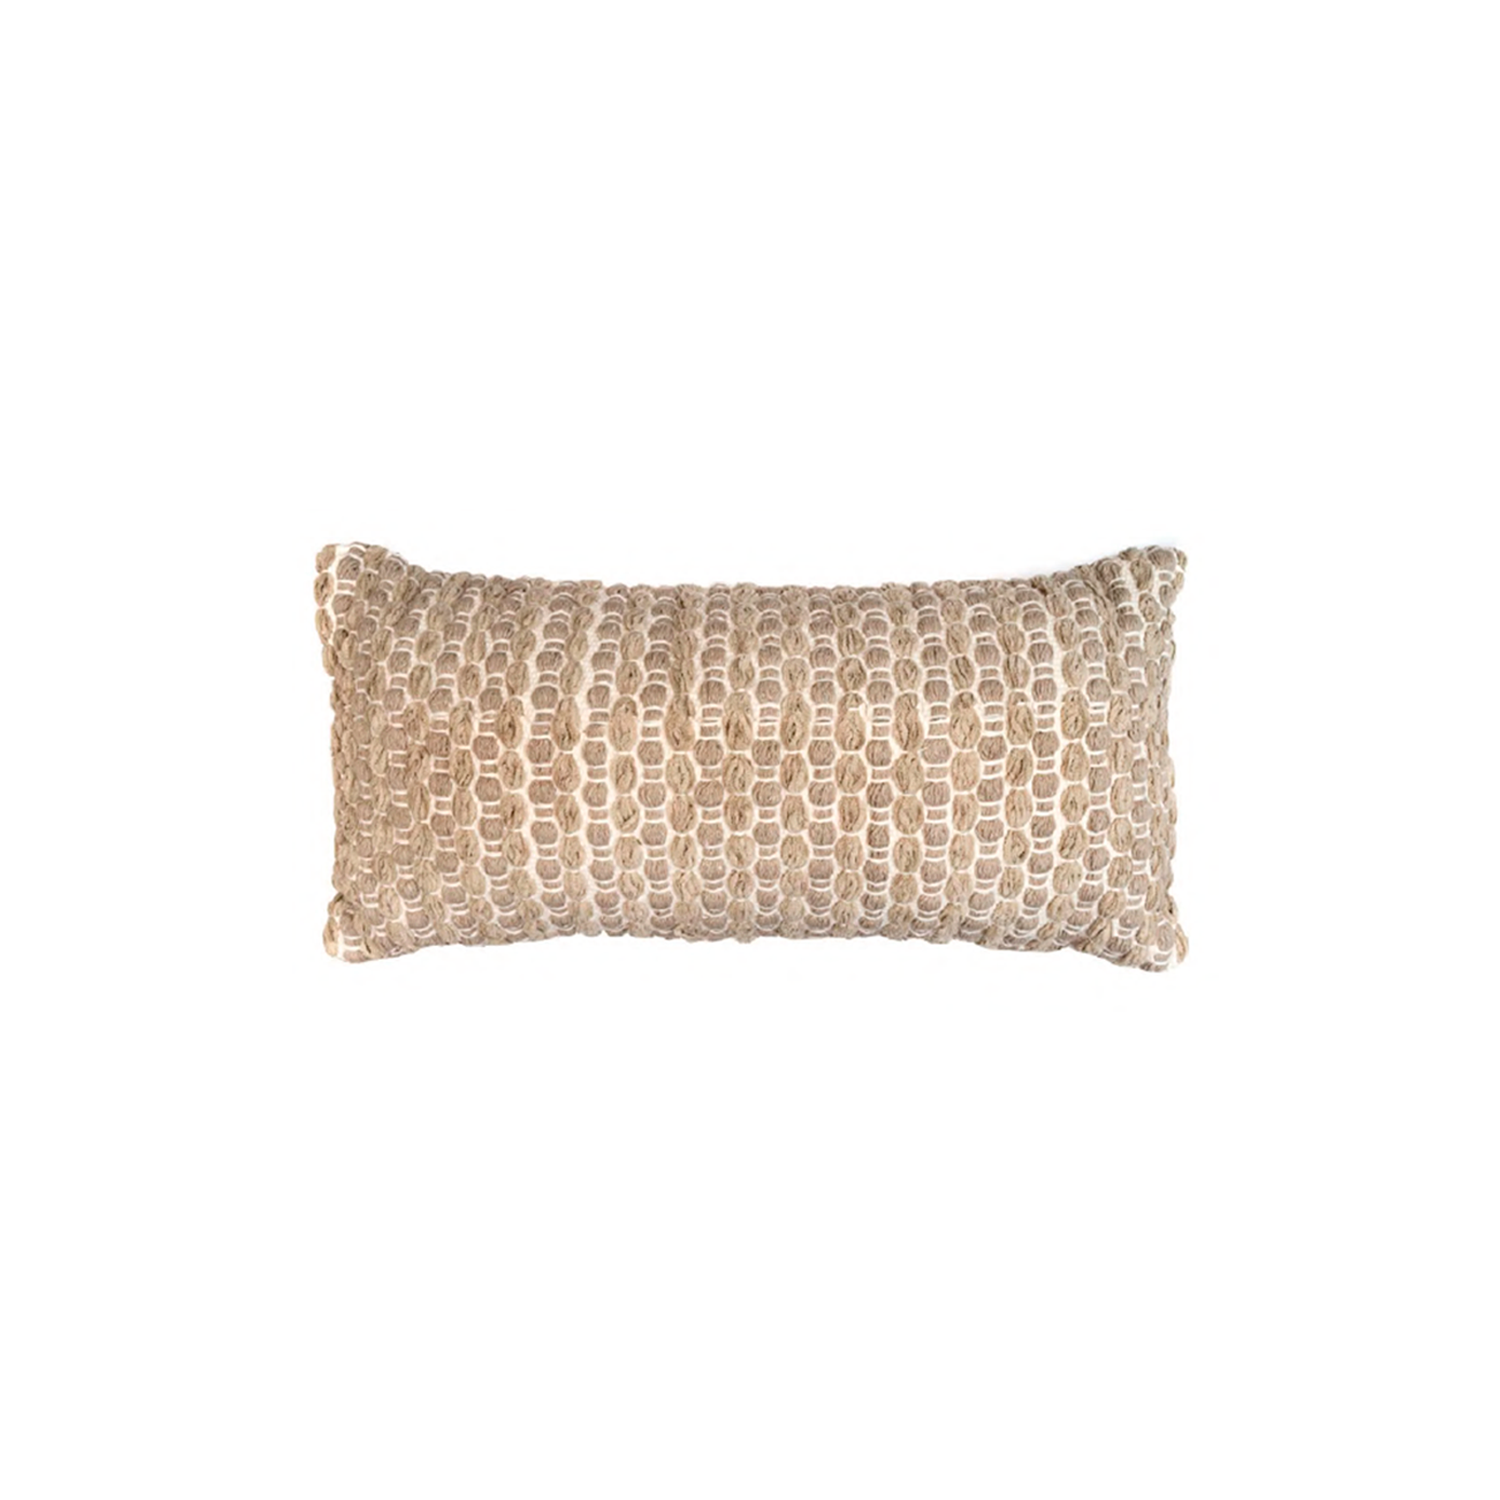 Estrela Terra Cotton Cushion Small - The Flame Sustainable Collection is made from a selection of organic cotton fibres, eco-friendly, hand-woven or elaborated using traditional hand-loom techniques. Carefully knitted within a trained community of women that found in their craft a way to provide their families.  This collection combines Elisa Atheniense mission for responsible sourcing and manufacturing. Each piece is meticulously hand-loom by artisans who practised methods with age-old techniques. With a minimal electricity impact, each item crafted is therefore unique and exclusive. Weavers and artisans are the ultimate lifelines of Elisa Atheniense Home Products.  The hand woven cotton, washable cushion cover is made in Brazil and the inner cushion is made in the UK.   | Matter of Stuff